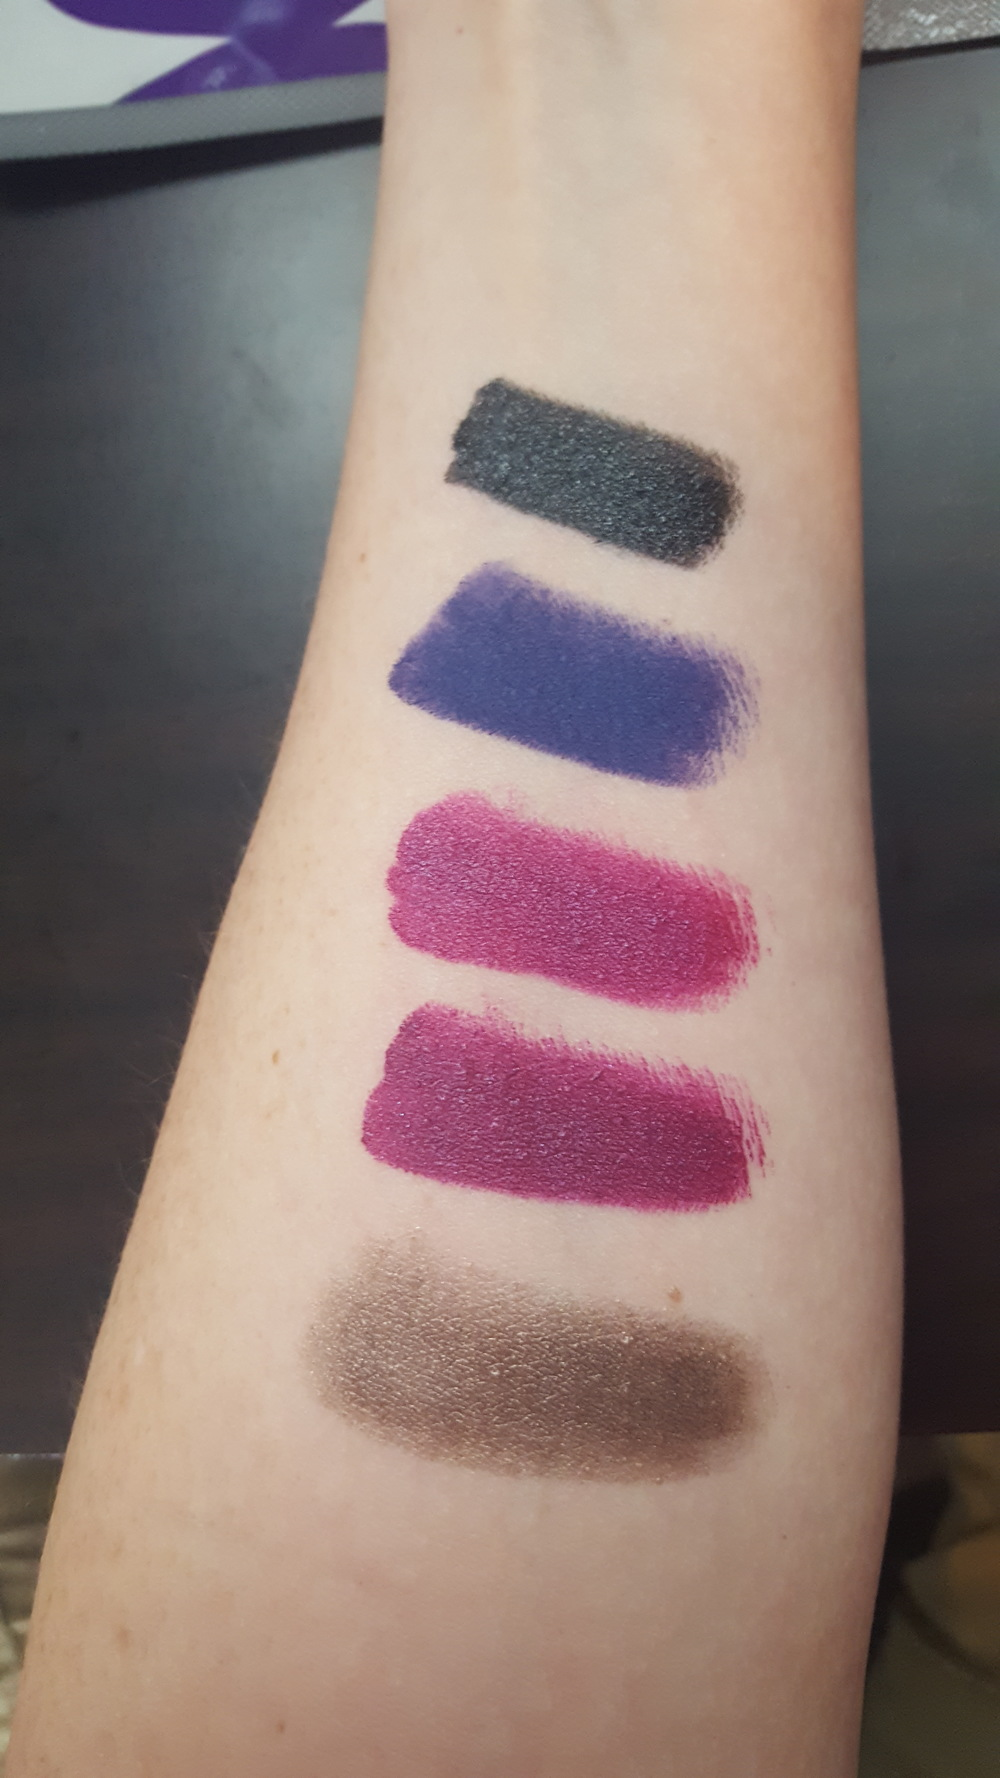 Top to Bottom: Bull Chic, Climax, Too Sexy, Boogie, Wet (wow - so much sexy talky...)